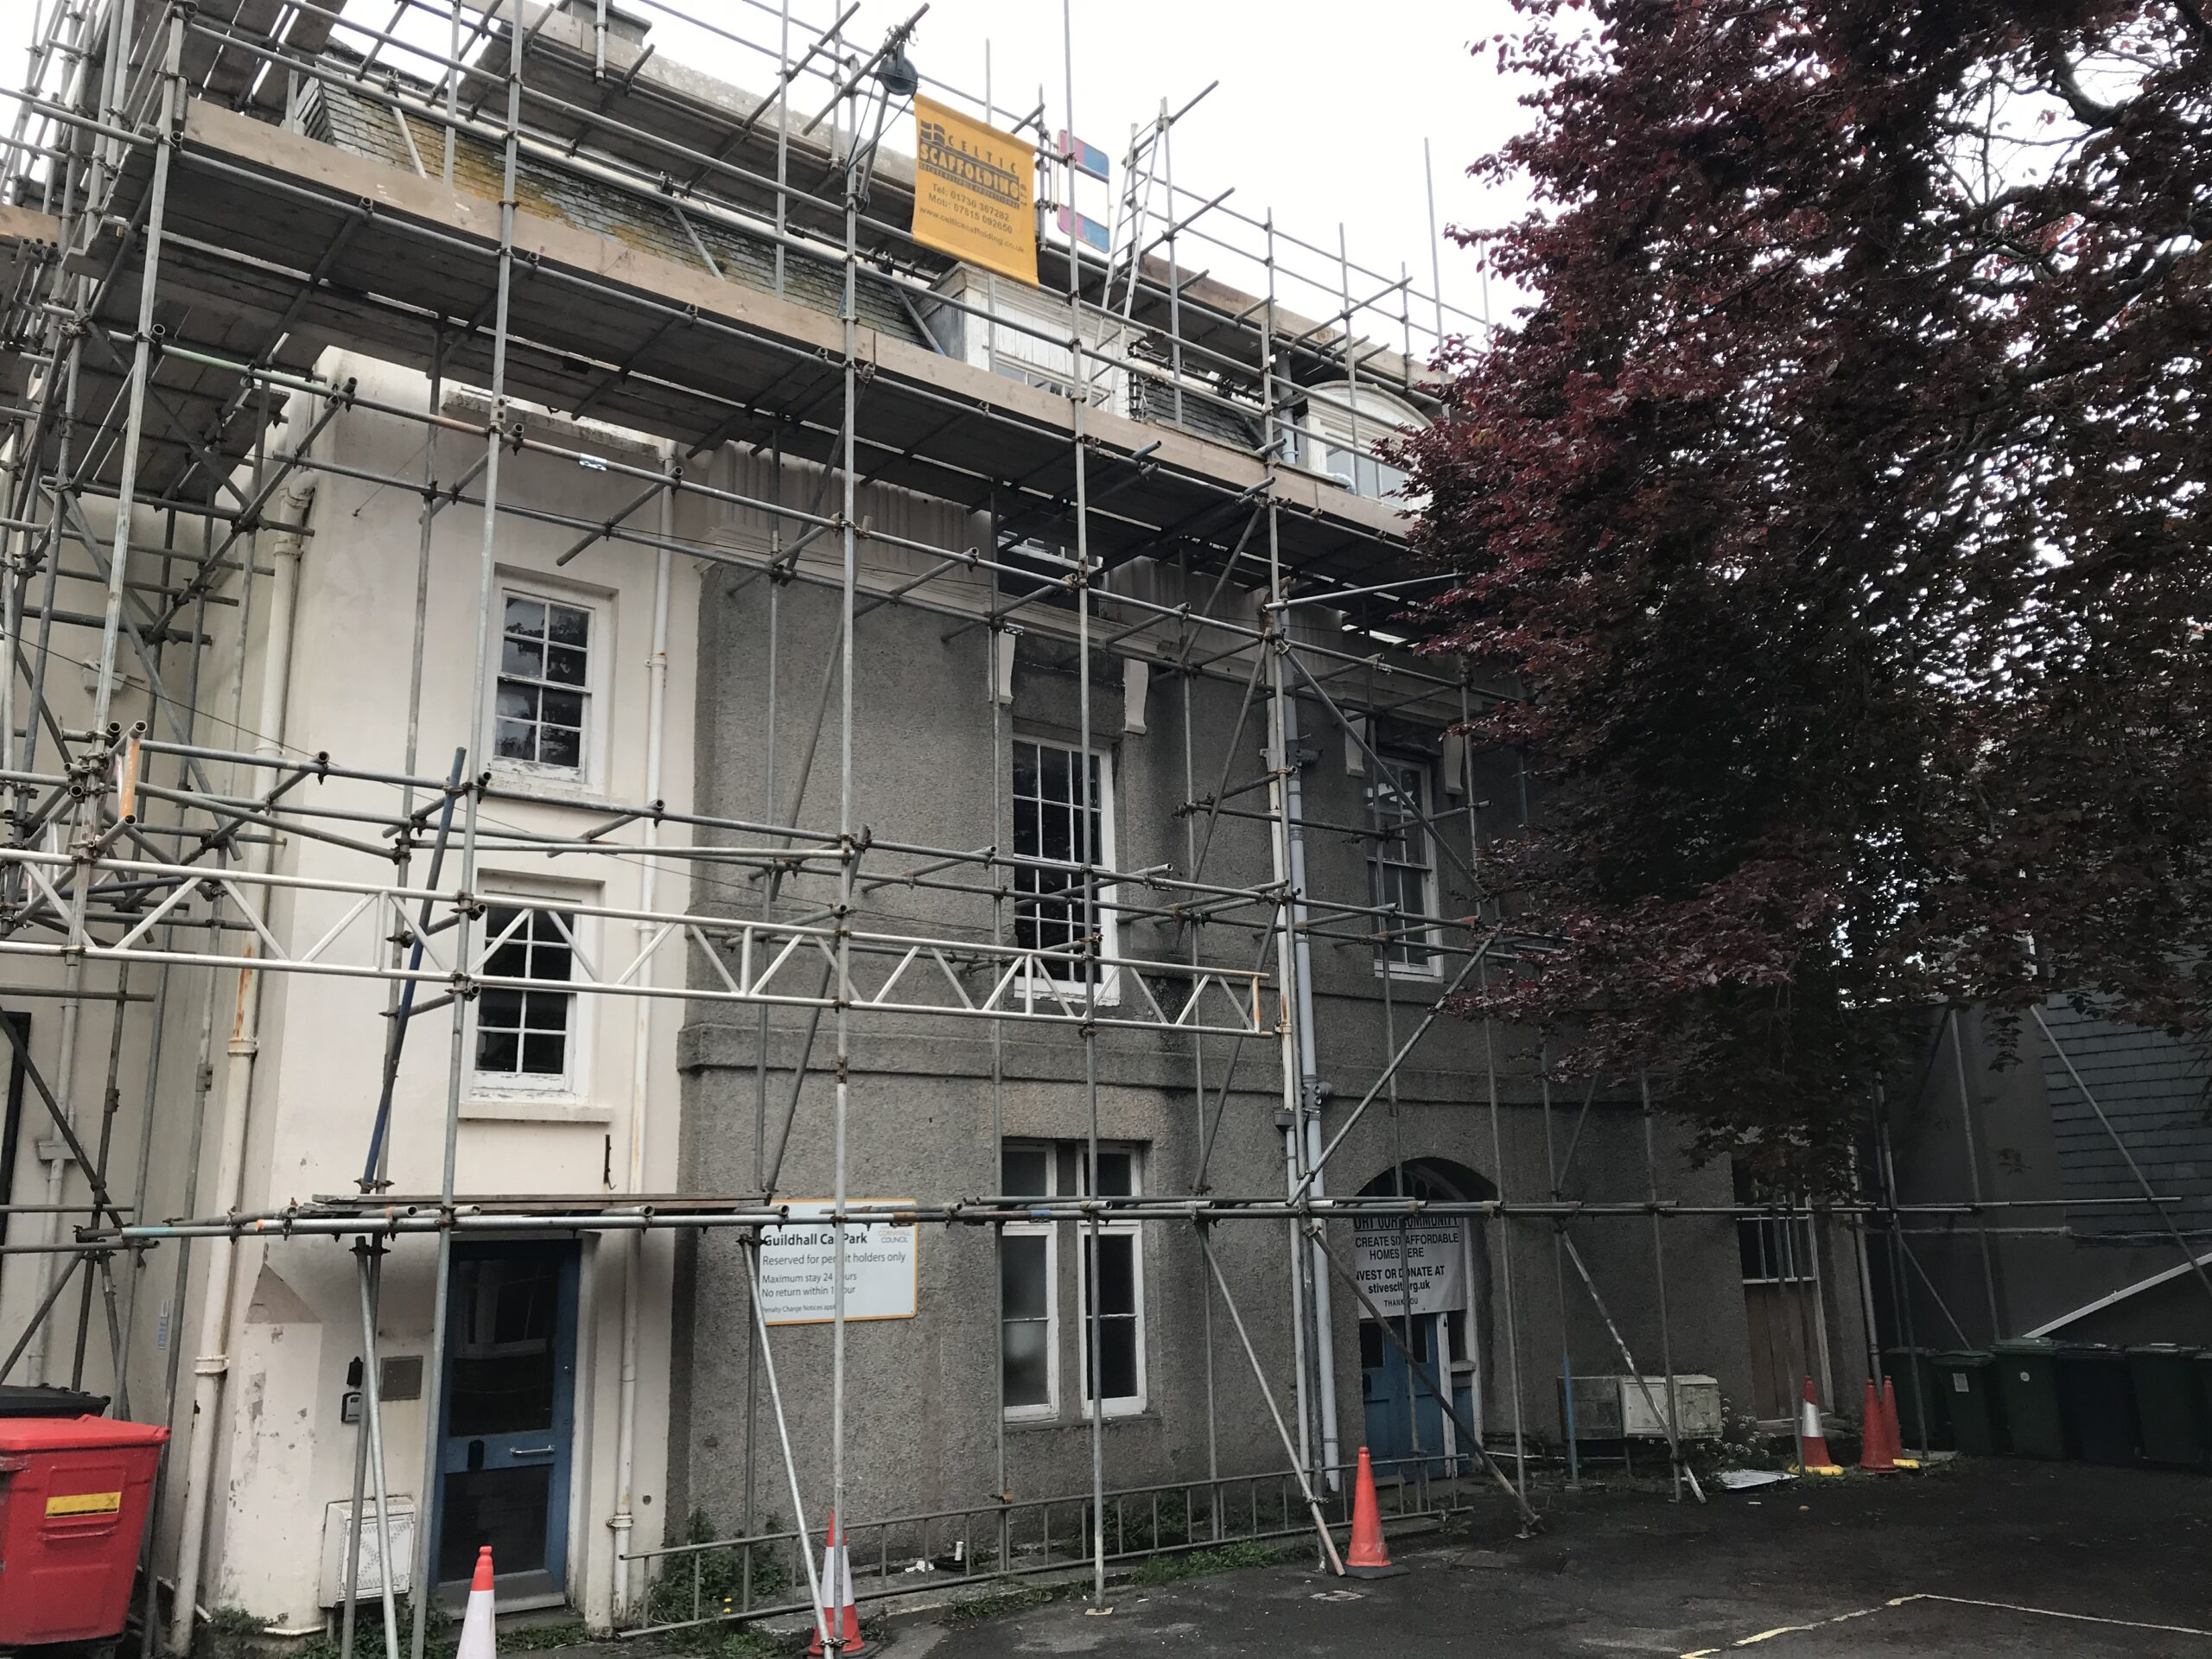 Old Vicarage Flats with scaffolding